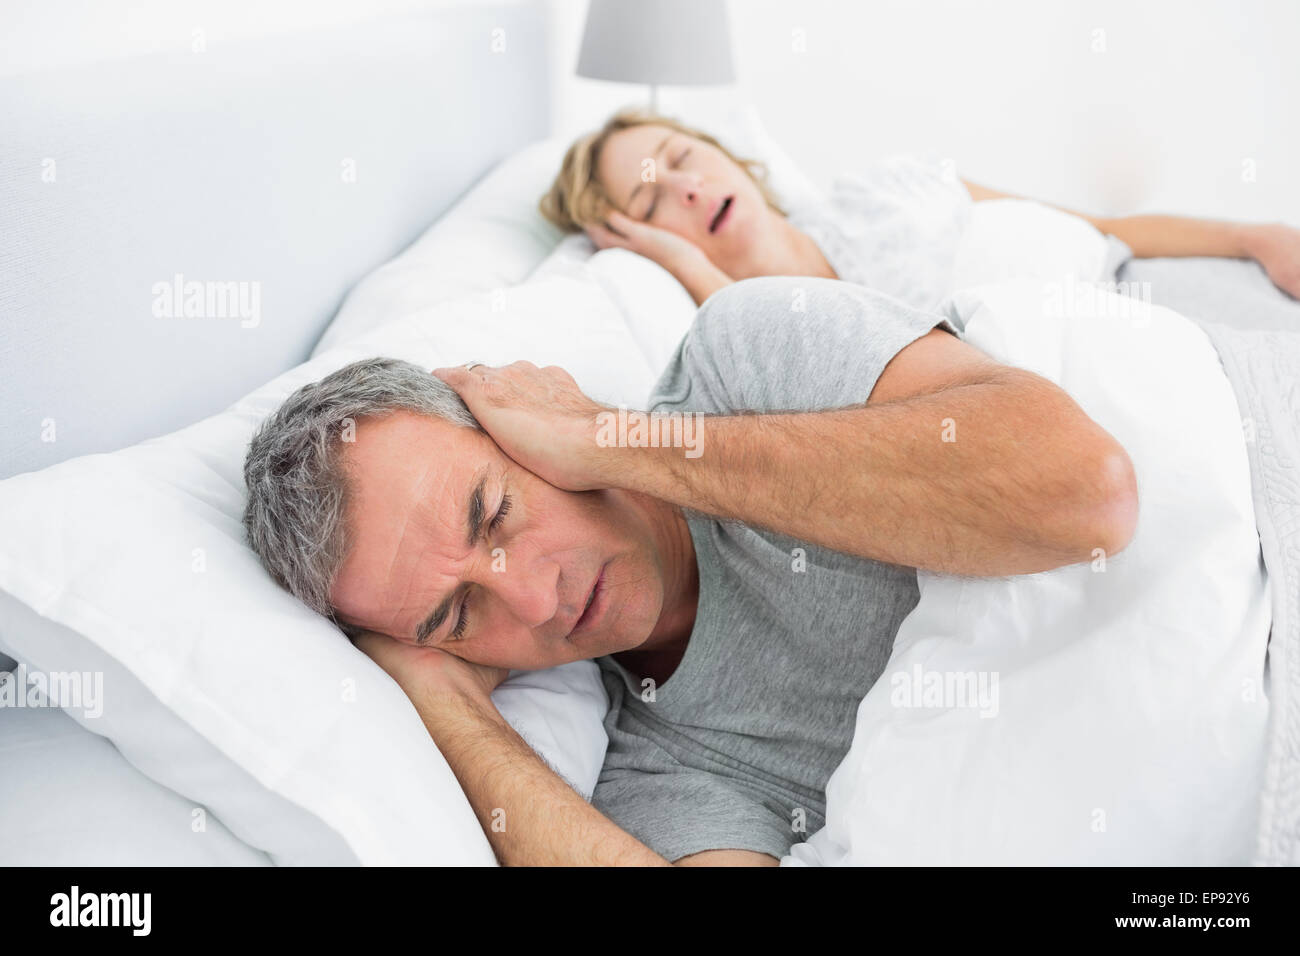 Tired man blocking his ears from noise of wife snoring - Stock Image